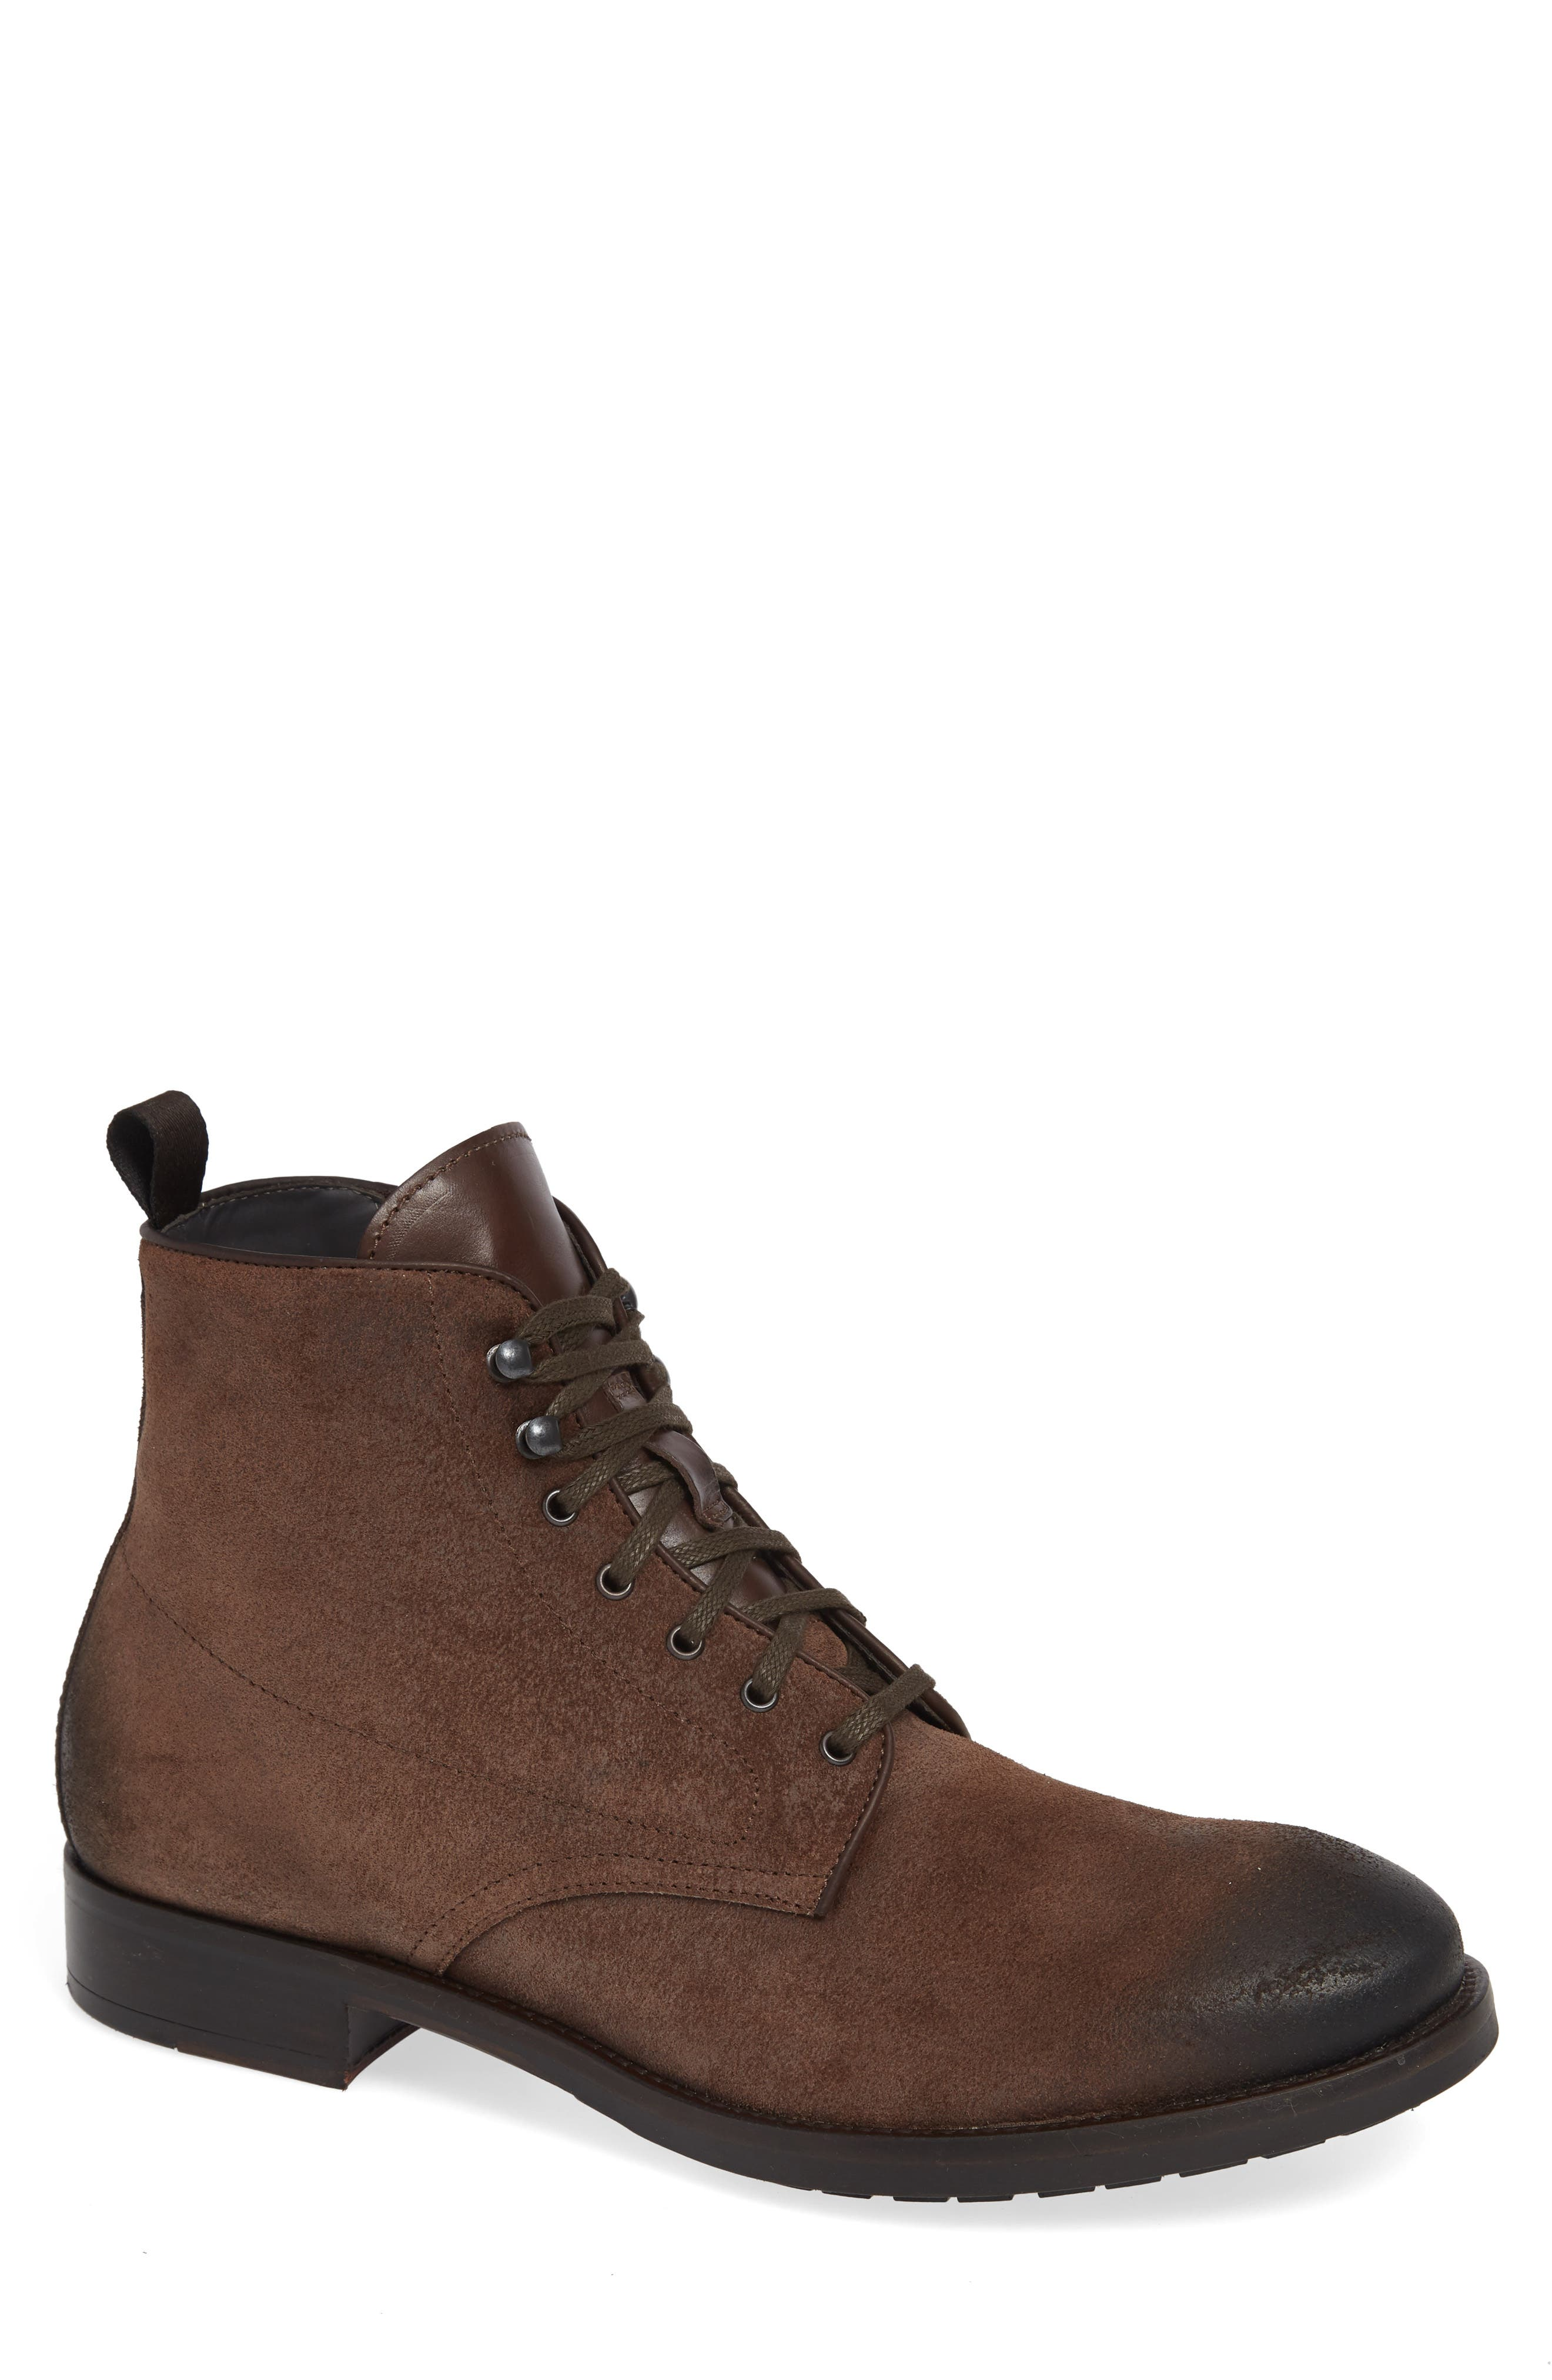 Athens Plain Toe Boot,                         Main,                         color, TMORO SUEDE/ LEATHER